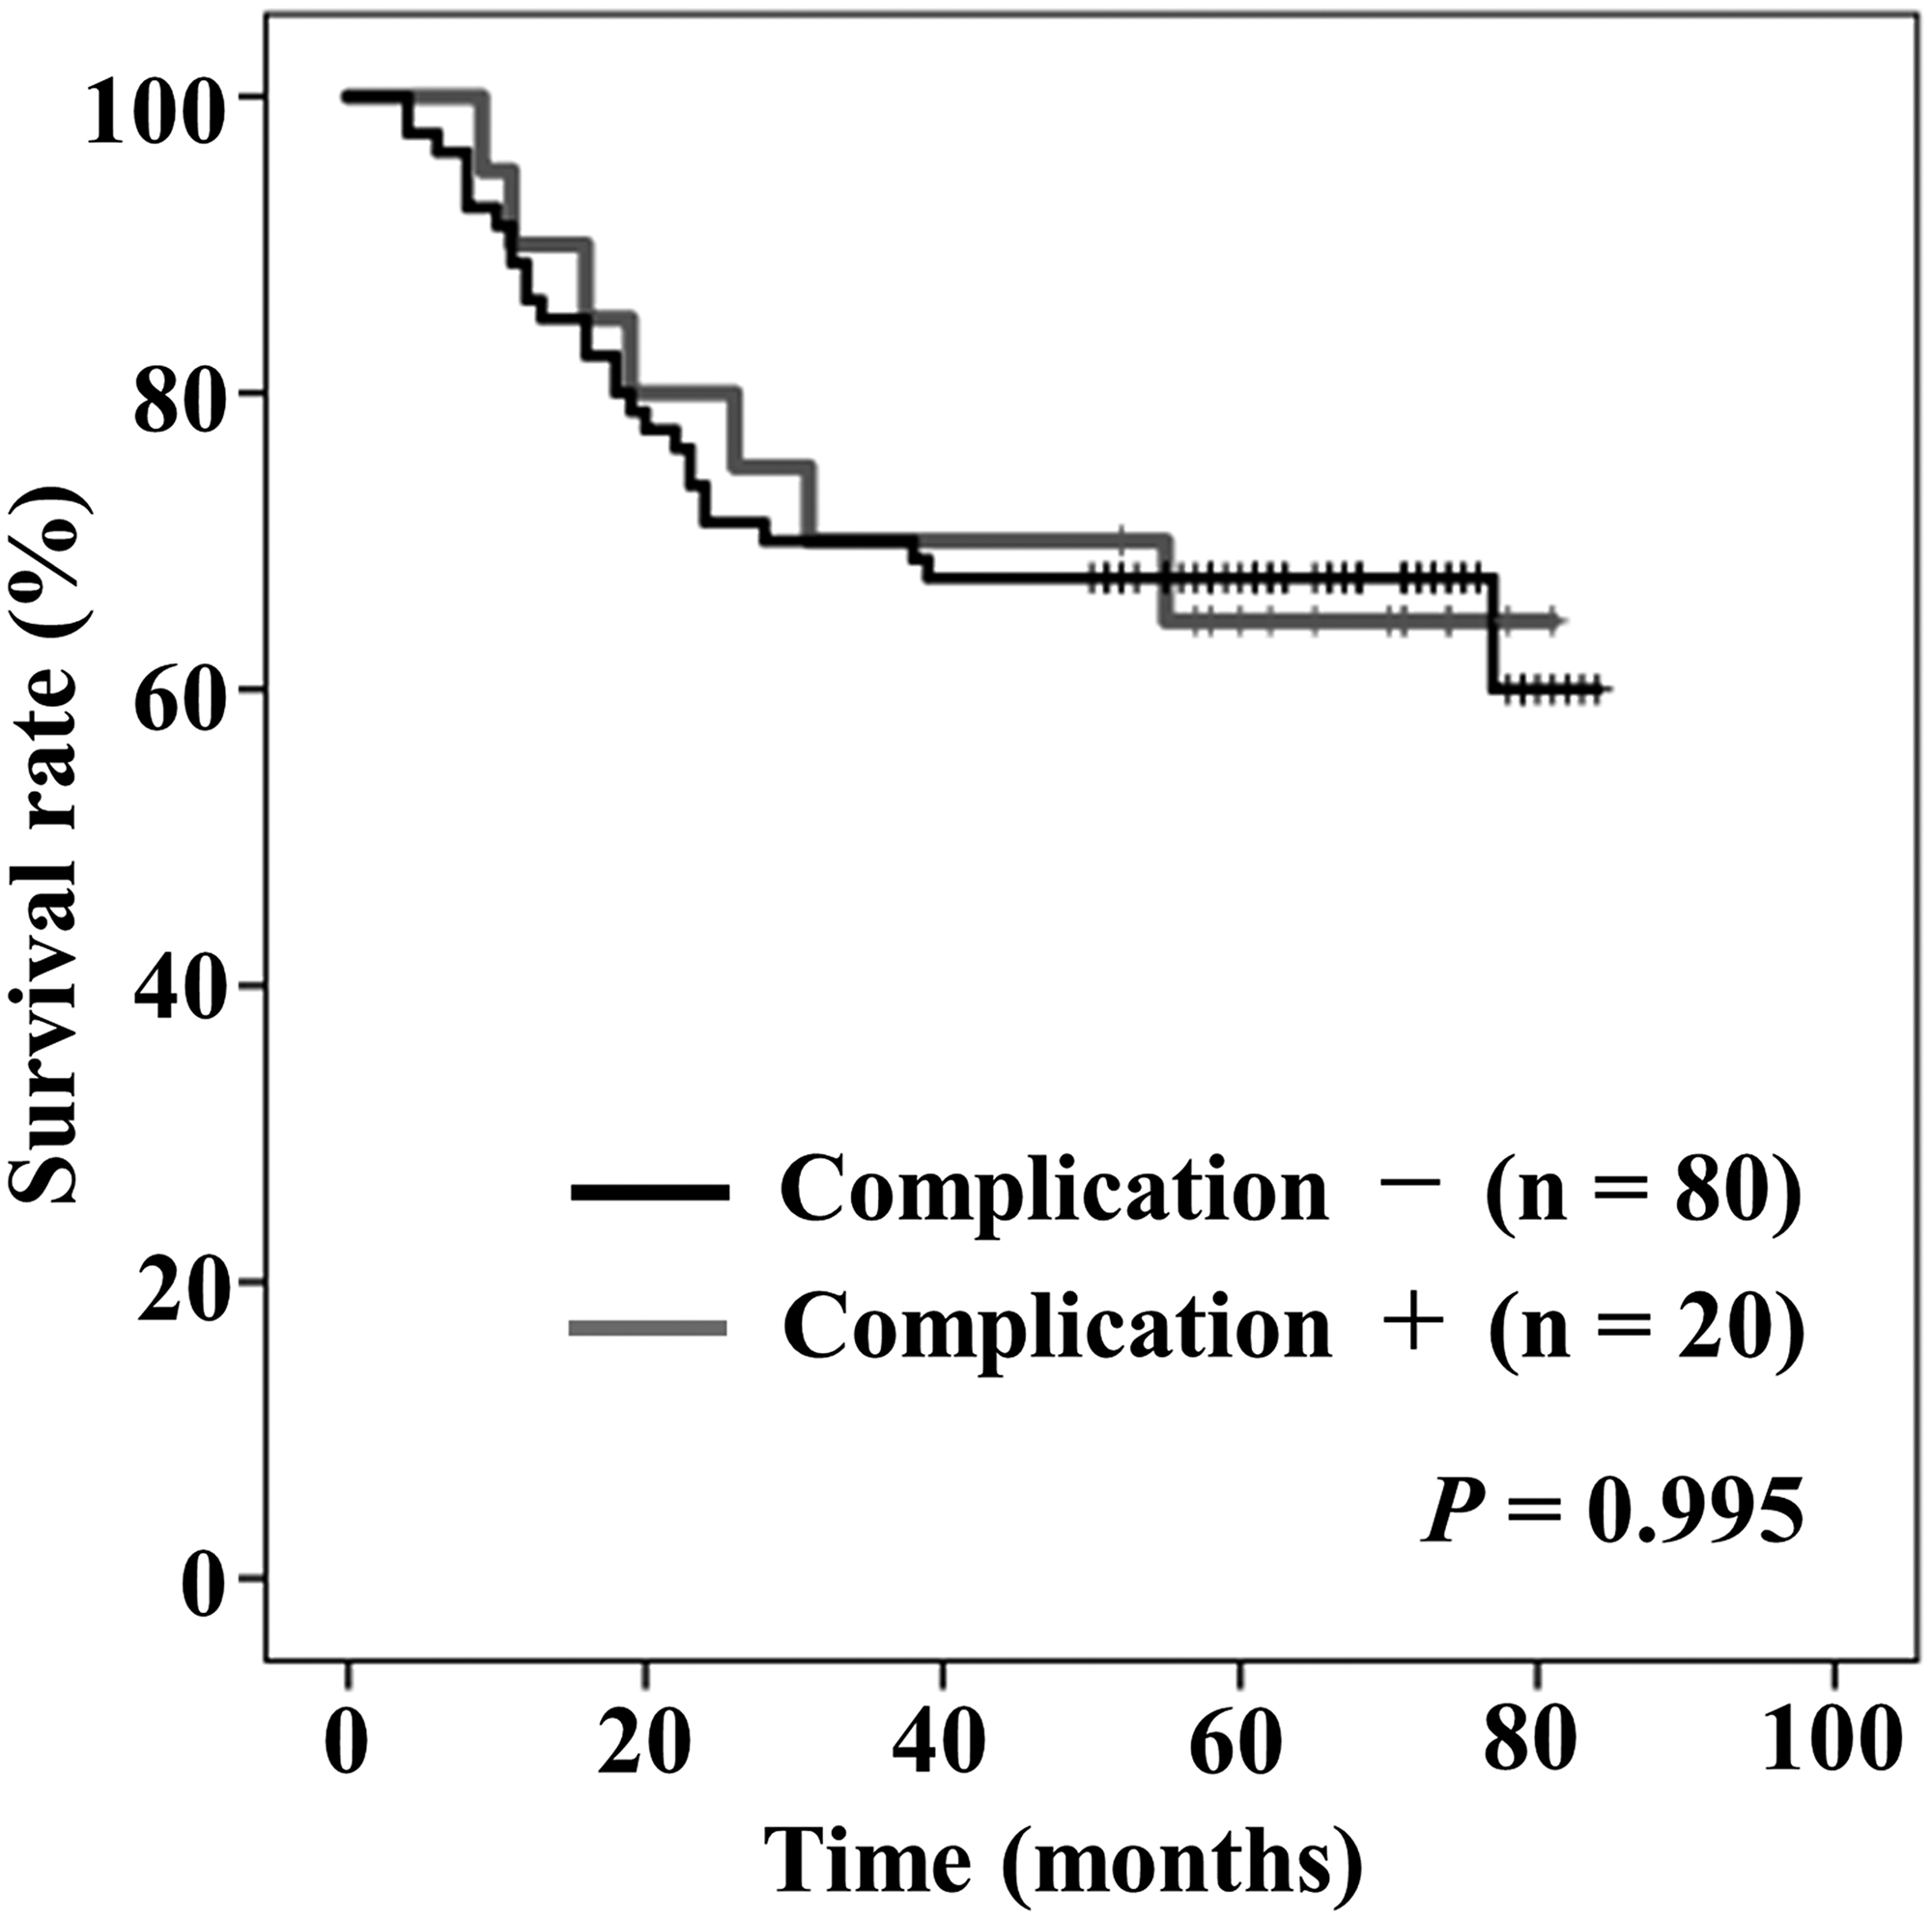 Kaplan–Meier curves of overall survival stratified by the presence (gray) or absence (black) of postoperative complication (more than Clavien-Dindo classification grade IIIa).